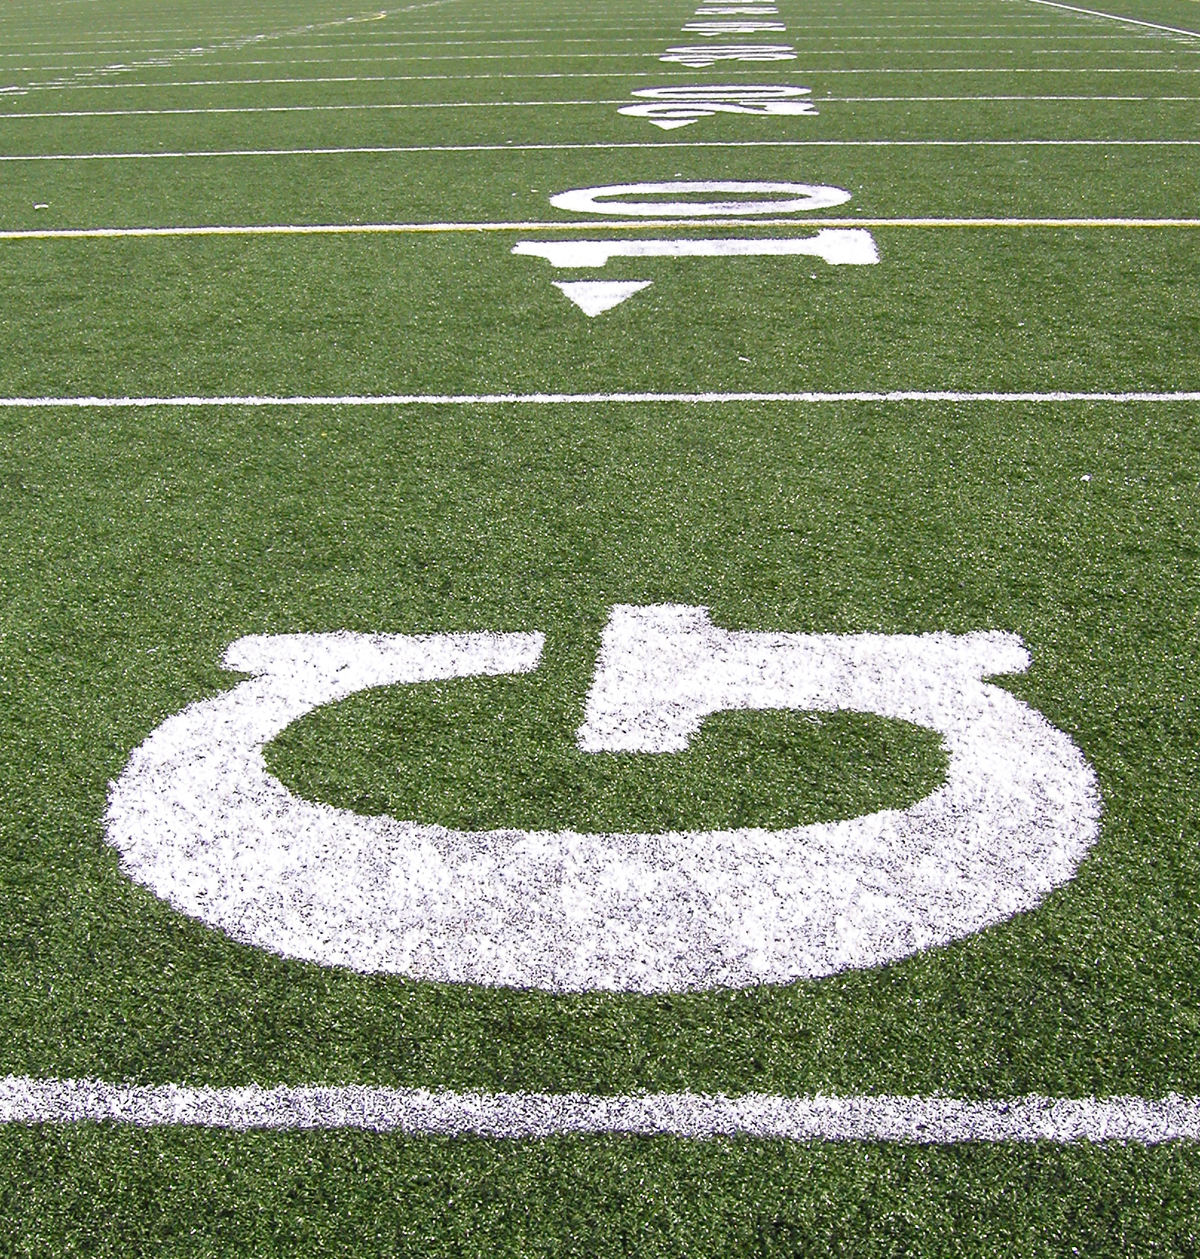 Interval Training On The Football Field For Fitness And Fat Loss